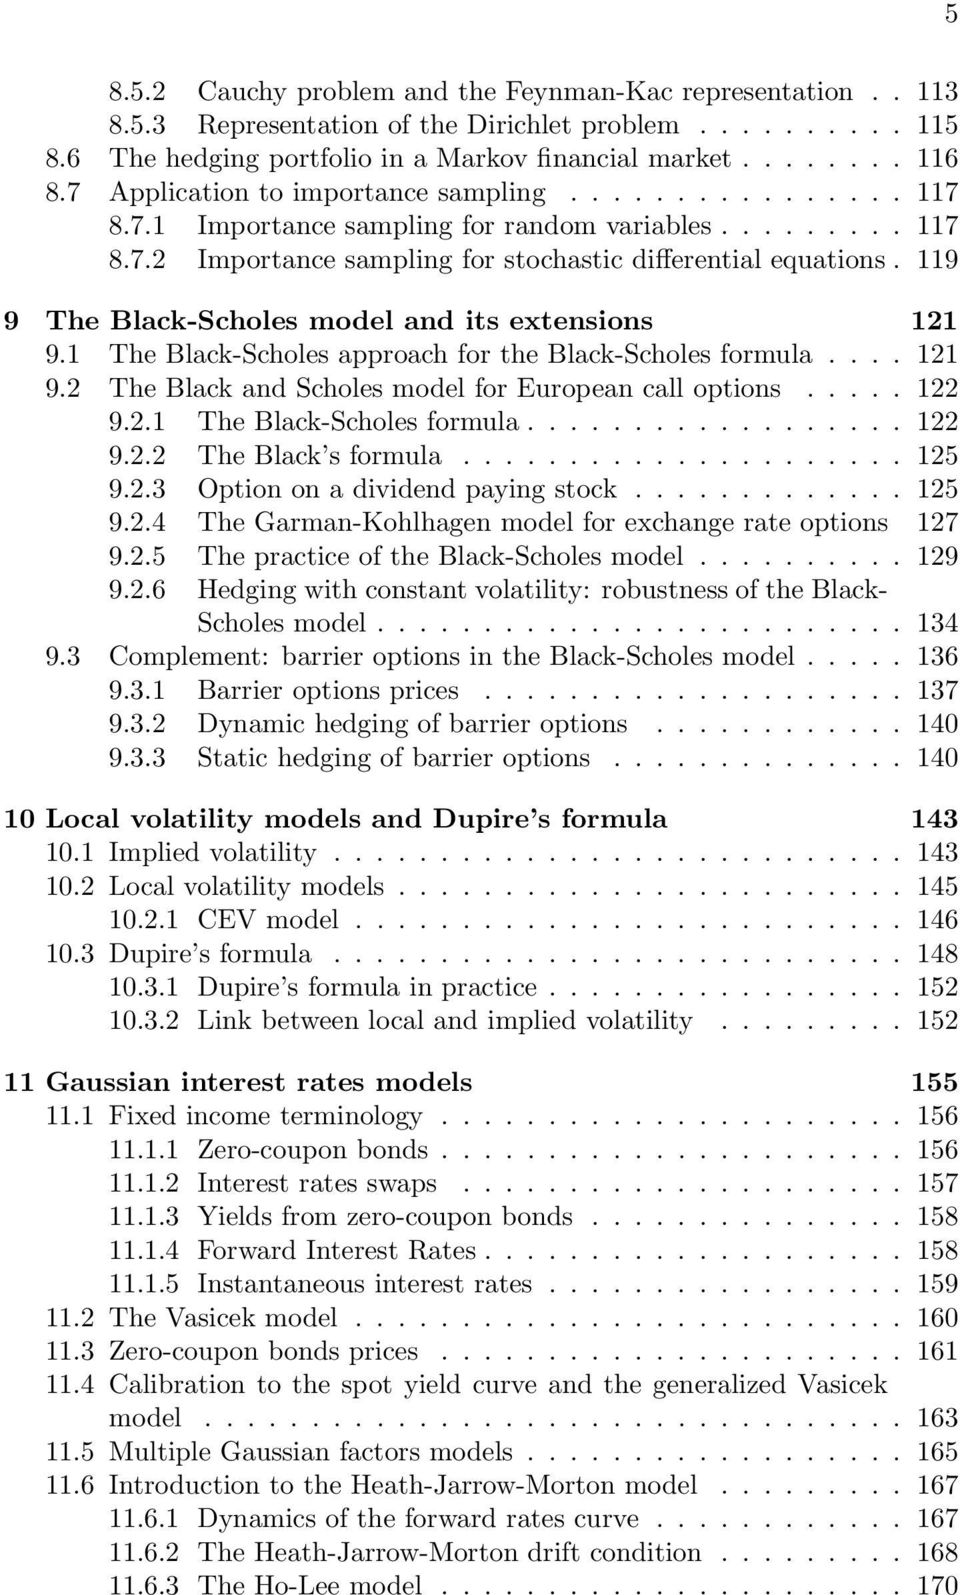 119 9 The Black-Scholes model and its extensions 121 9.1 The Black-Scholes approach for the Black-Scholes formula.... 121 9.2 The Black and Scholes model for European call options..... 122 9.2.1 The Black-Scholes formula.